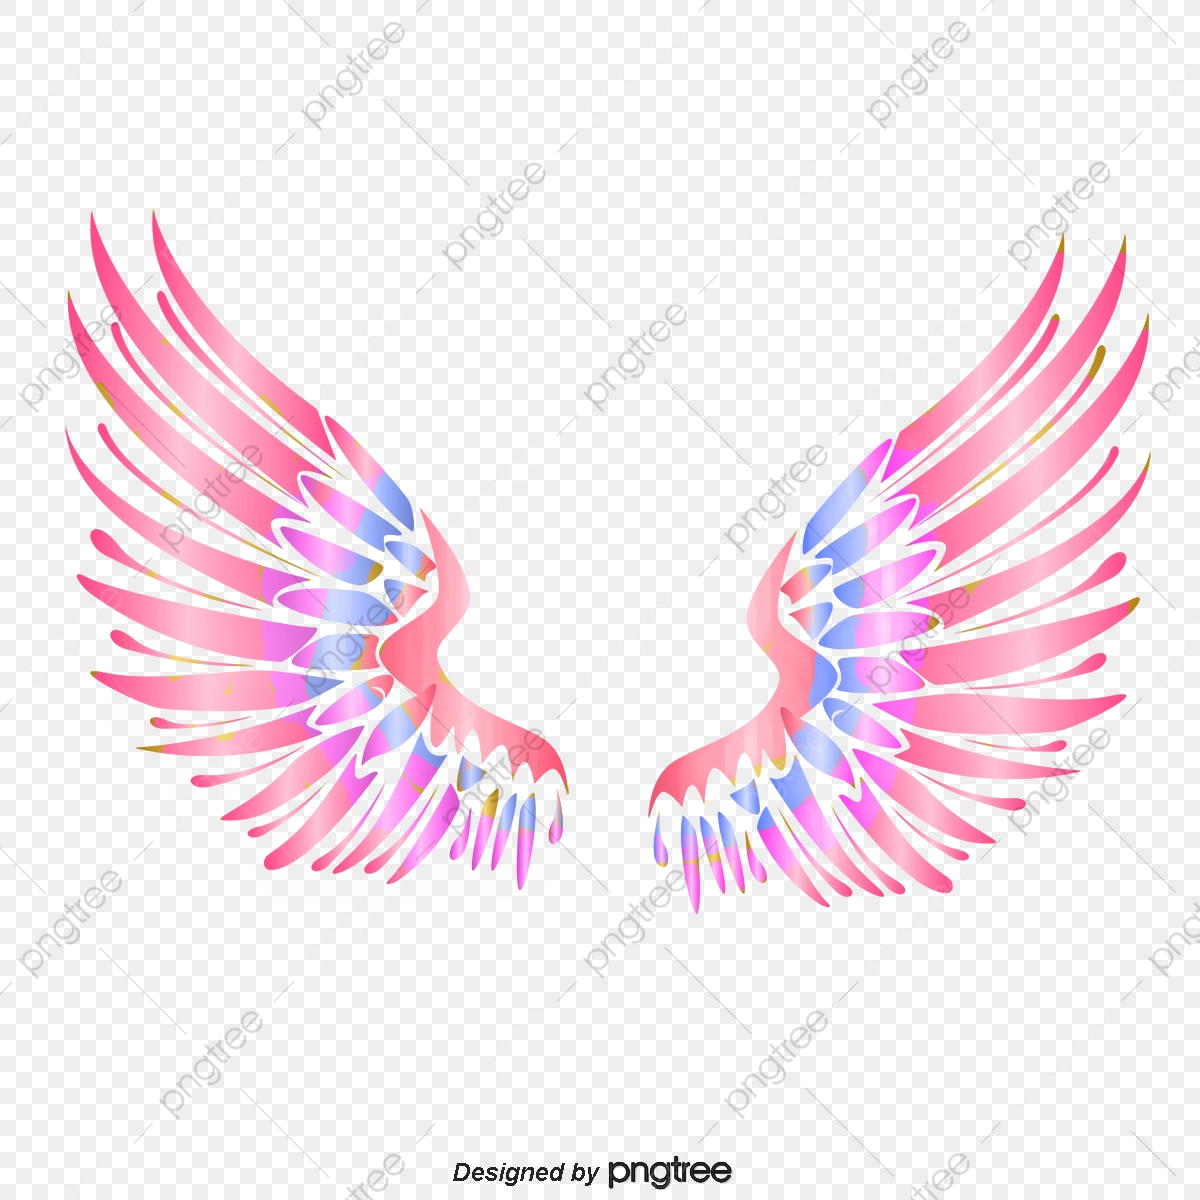 Wing clipart colorful. Angel wings feather hand